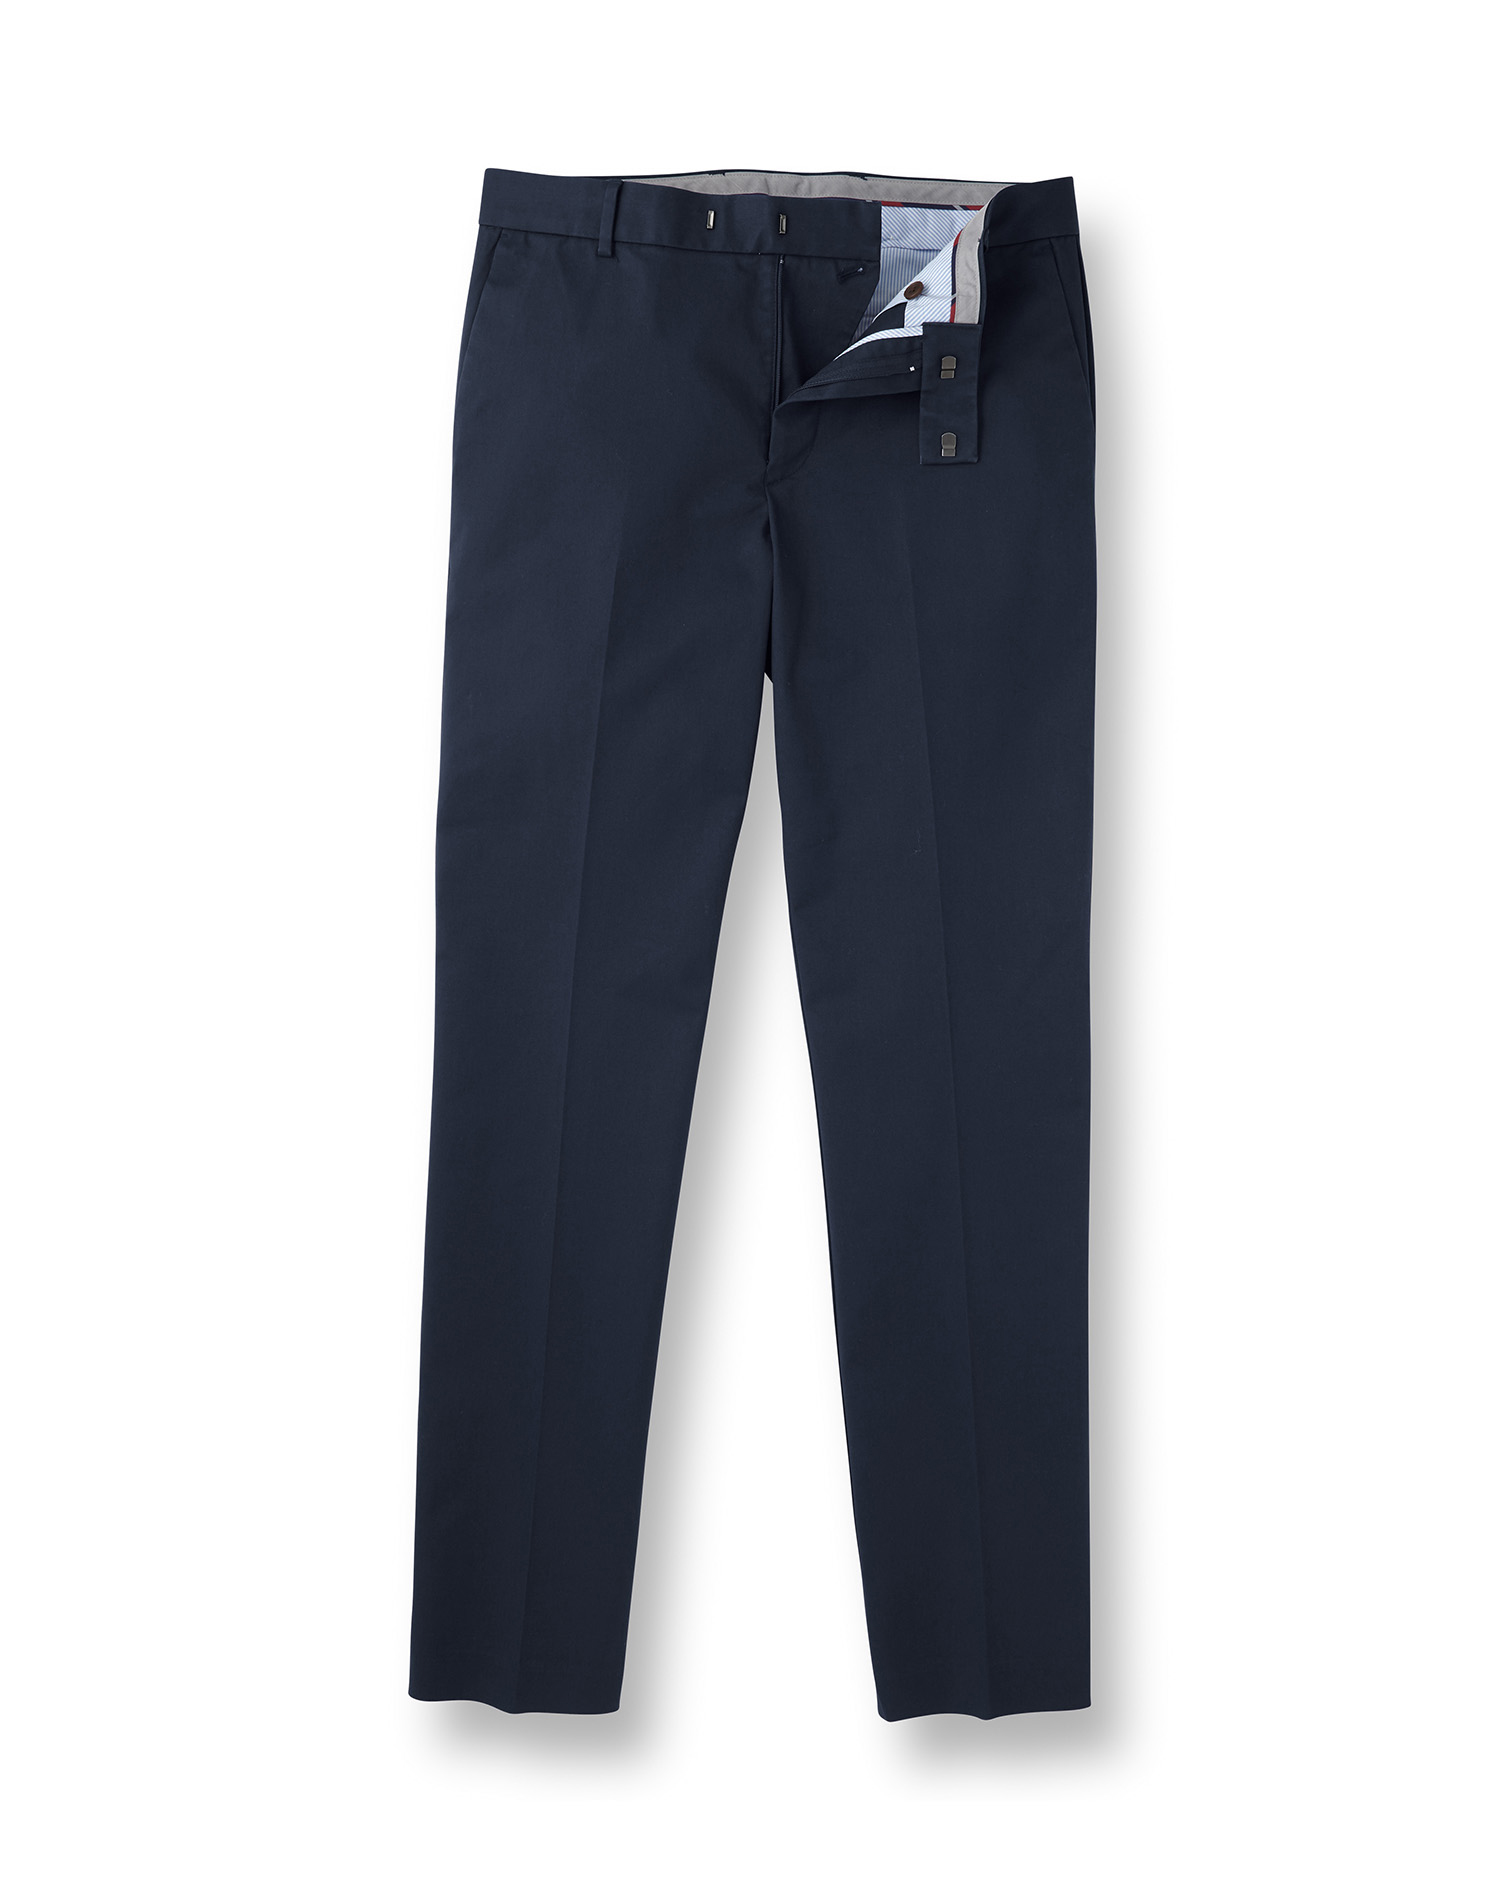 Navy Flat Front Non-Iron Cotton Chino Trousers Size W36 L9 by Charles Tyrwhitt